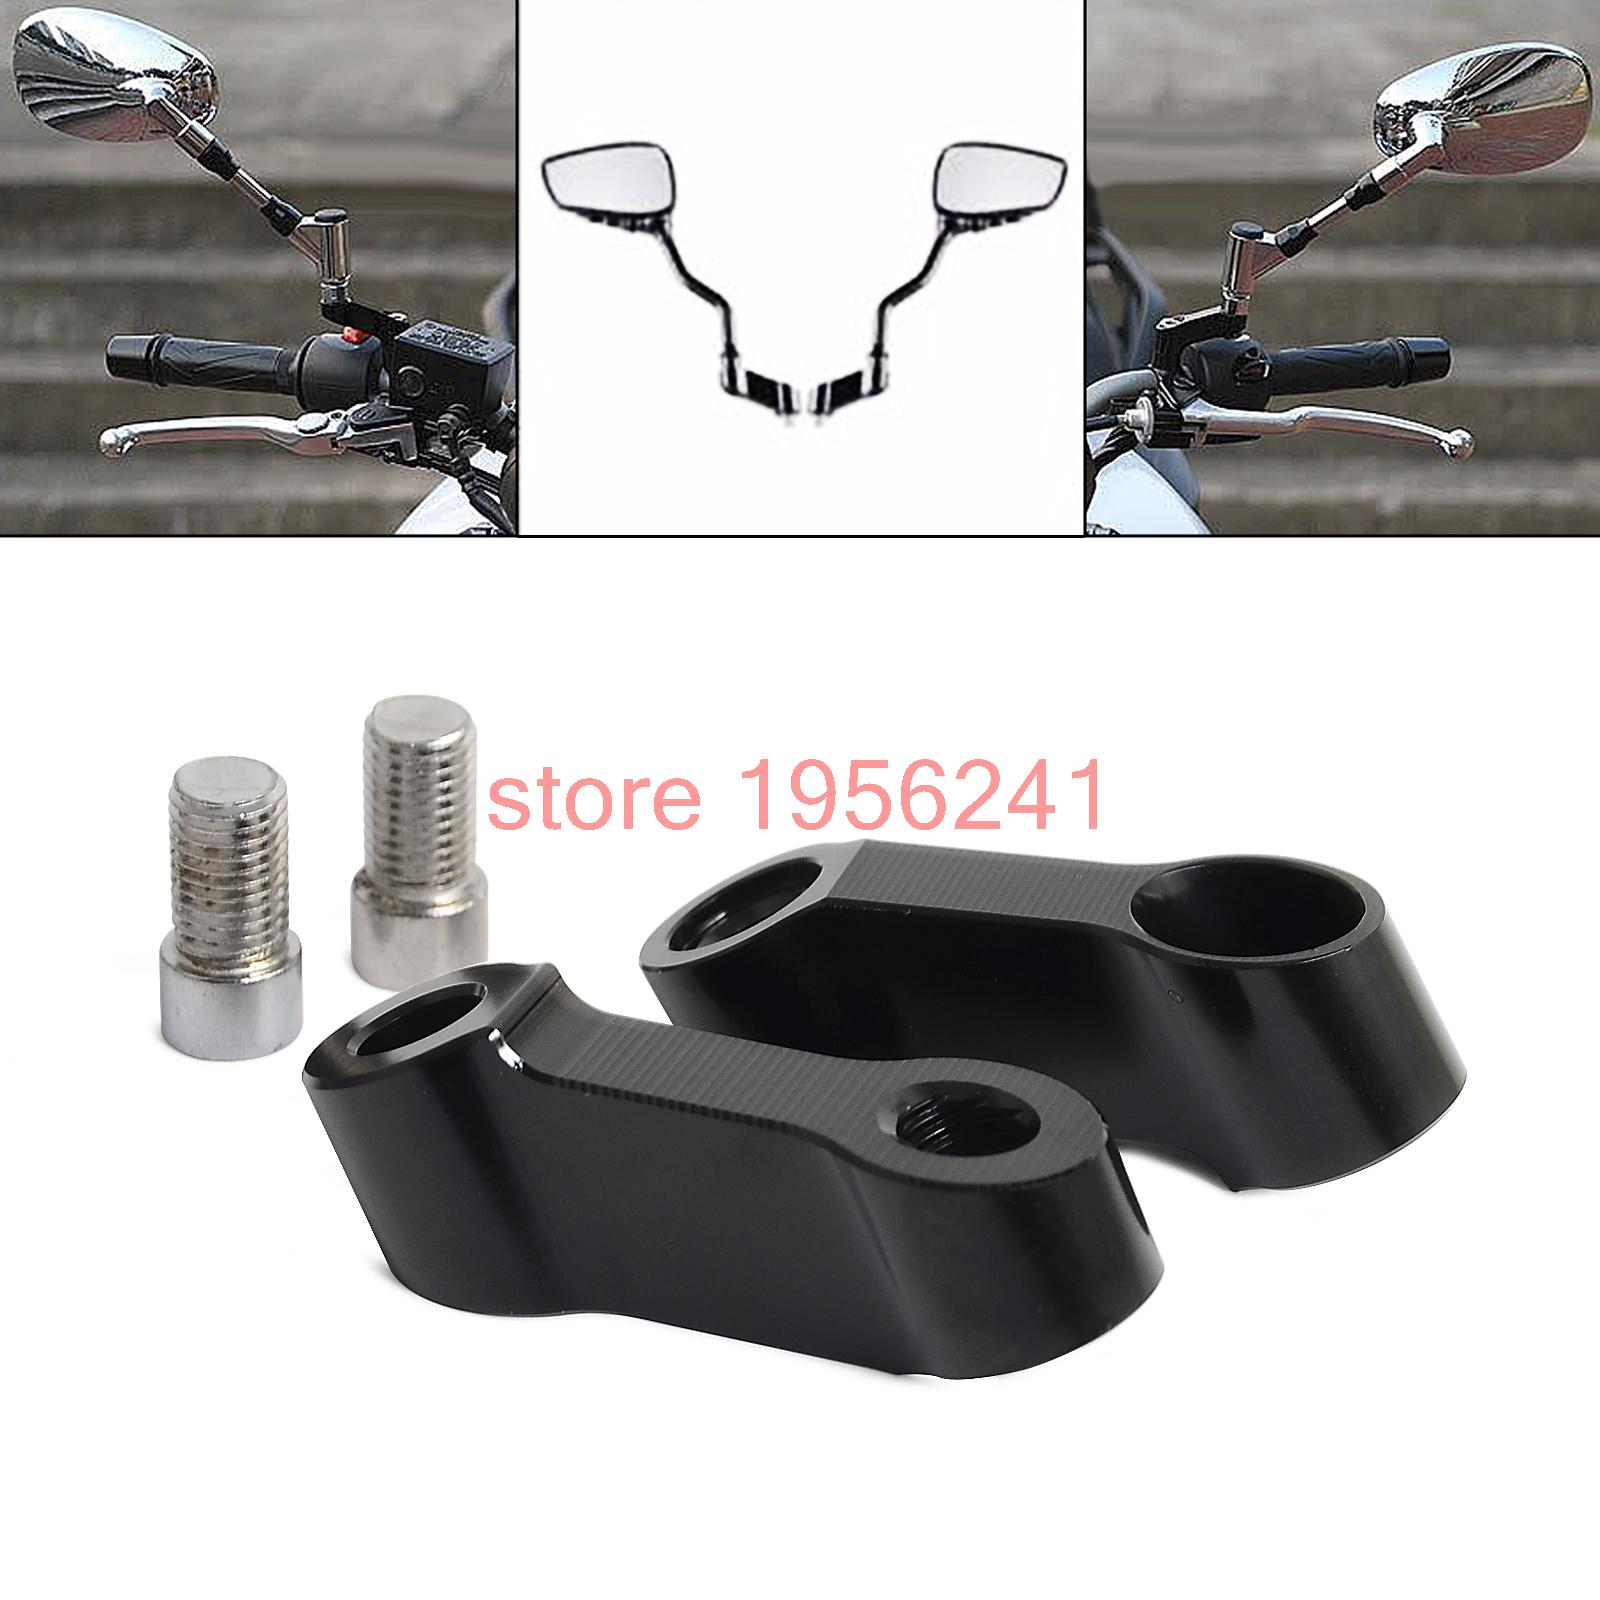 Black Bolts Size 10mm Mirrors Extension Riser Extend Adapter For KTM Duke 125 200 390 690 1190 Adventure 990 Super Motto zoomer ruckus fi nps50 black engine frame extend extension kit with handle post